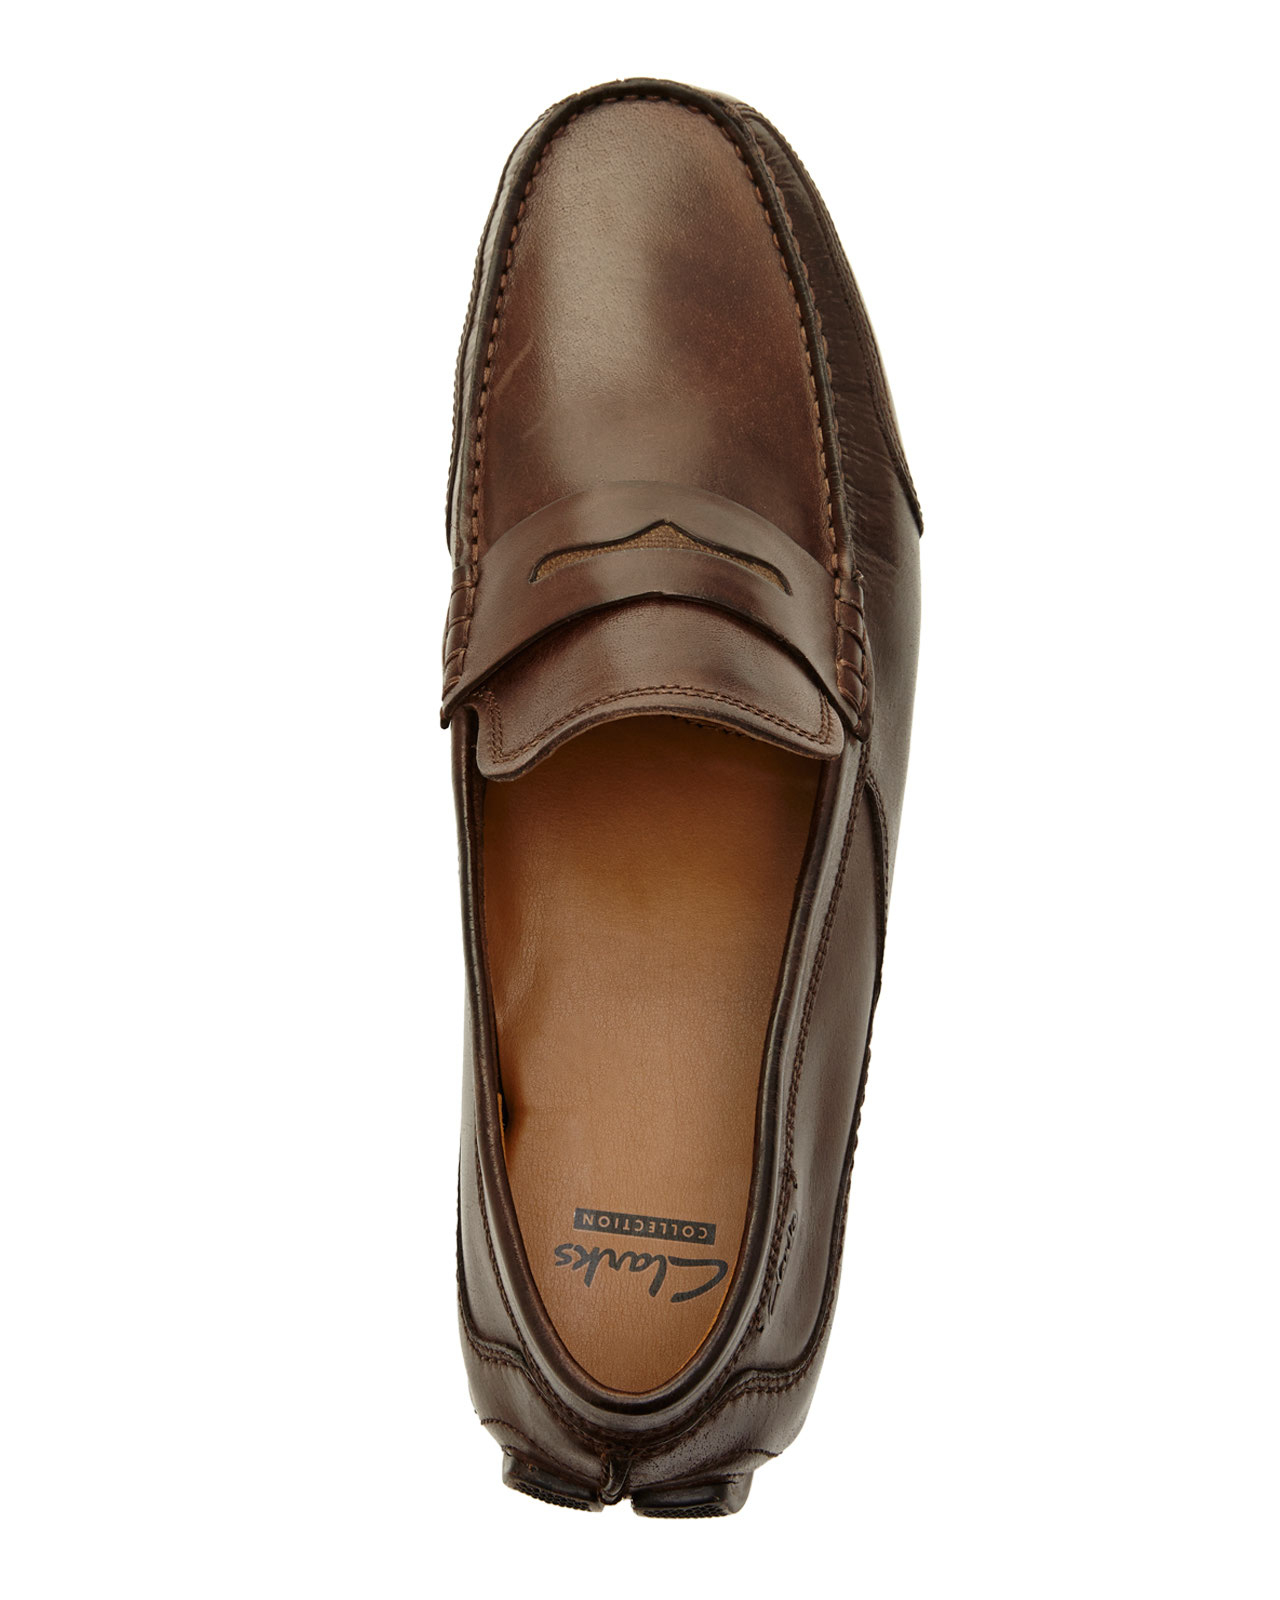 bbabf398475 Gallery. Previously sold at  Century 21 · Men s Penny Loafers ...